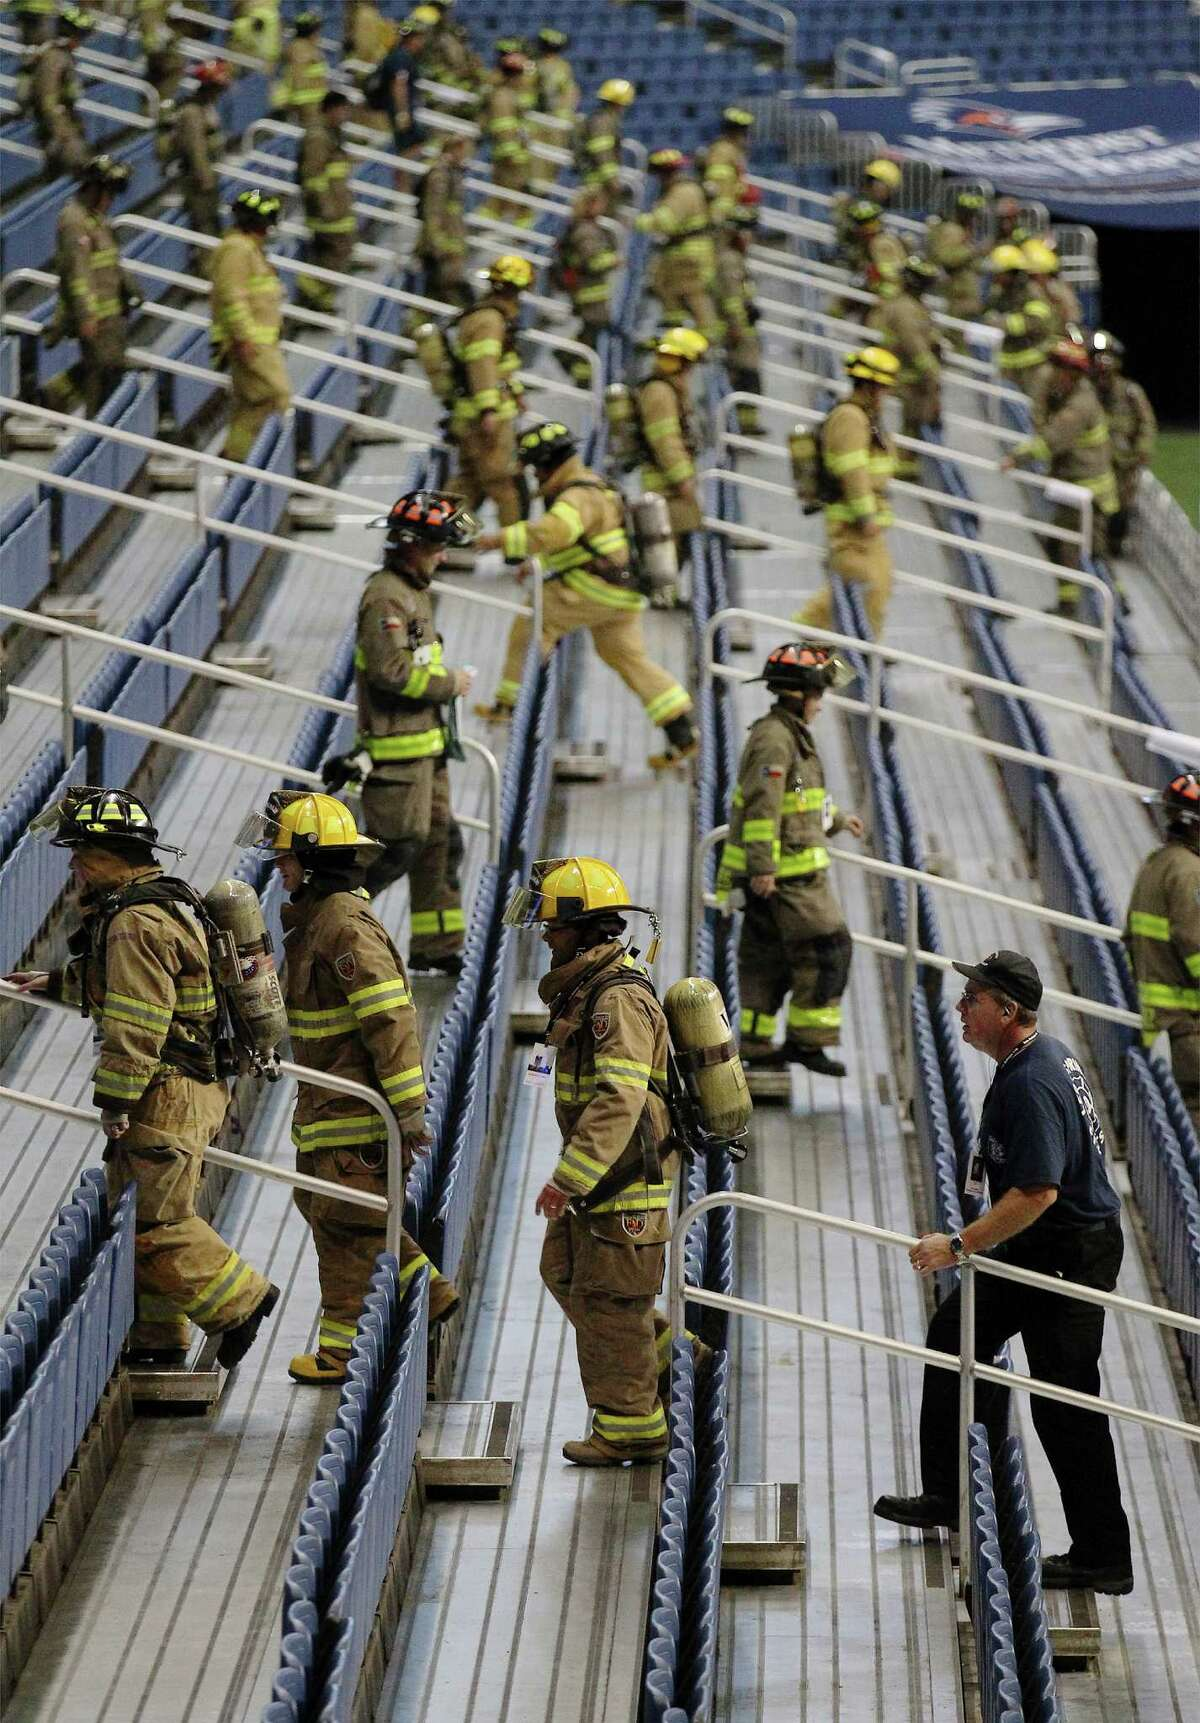 Firefighters climb the steps inside the Alamodome during the San Antonio 110 9/11 Memorial Climb at the Alamodome on Thursday, Sept. 11, 2014. Hundreds of first responders and civilians gathered to take part in the event to pay tribute to the fallen firefighters from Sept. 11, 2001. Each participating first responder carried the face and name of firefighter that perished 13 years ago in New York City. Many wore bunker gear and breathing apparatus that added up to additional pounds as a tribute during their climb. At the end of the climb, a name tag of the fallen firefighter was placed on a 9/11 memorial, their name called out and a bell was rung.